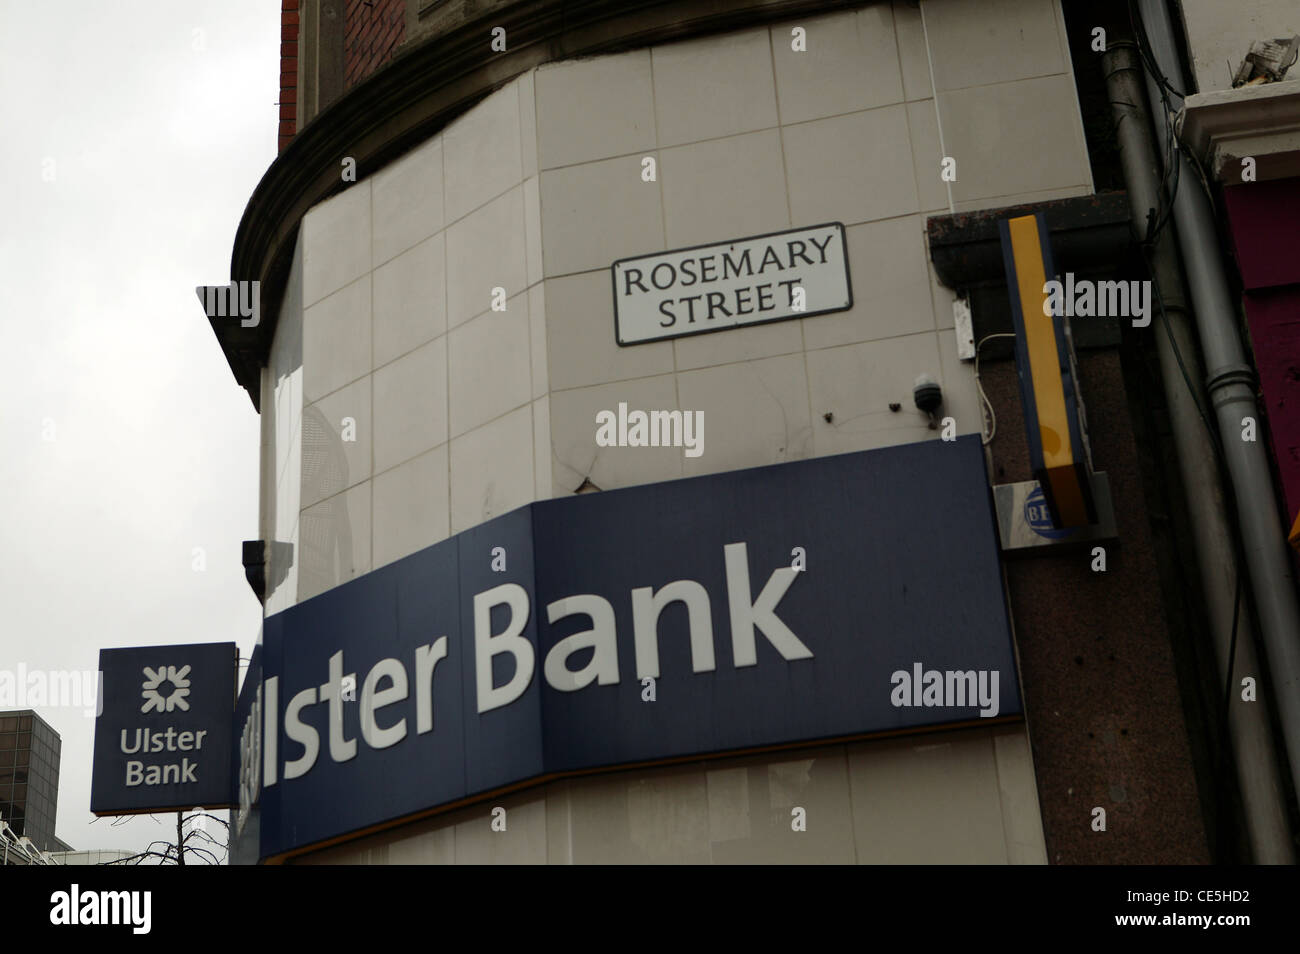 Ulster Bank Sign, Rosemary Street sign, Royal Bank of Scotland Logo, Navy blue and white corporate sign. - Stock Image